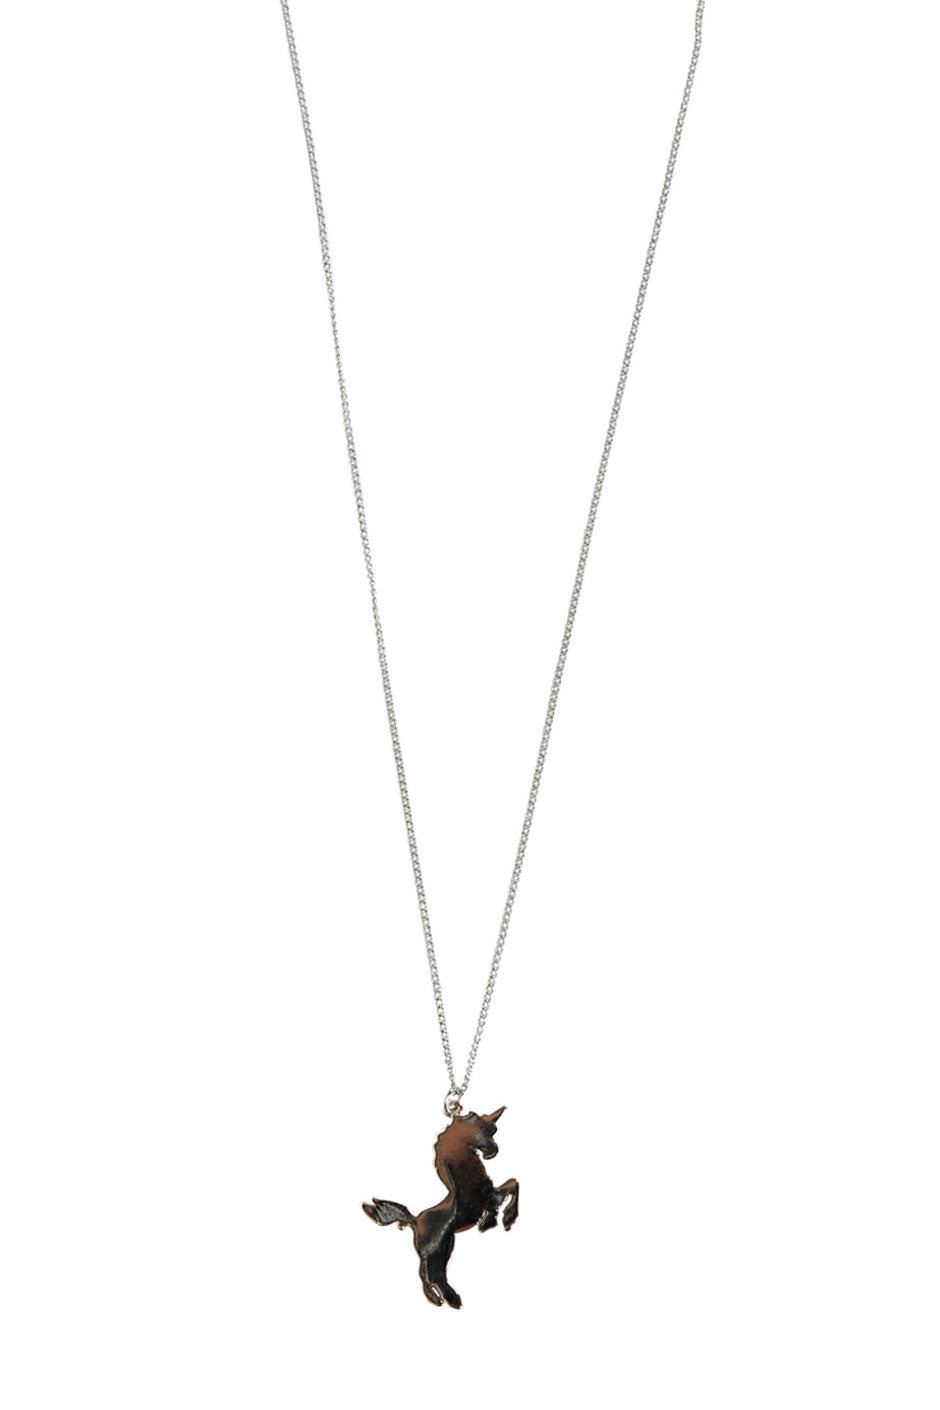 amazon unicorn girls kids rainbow l metal necklace party com slp necklaces